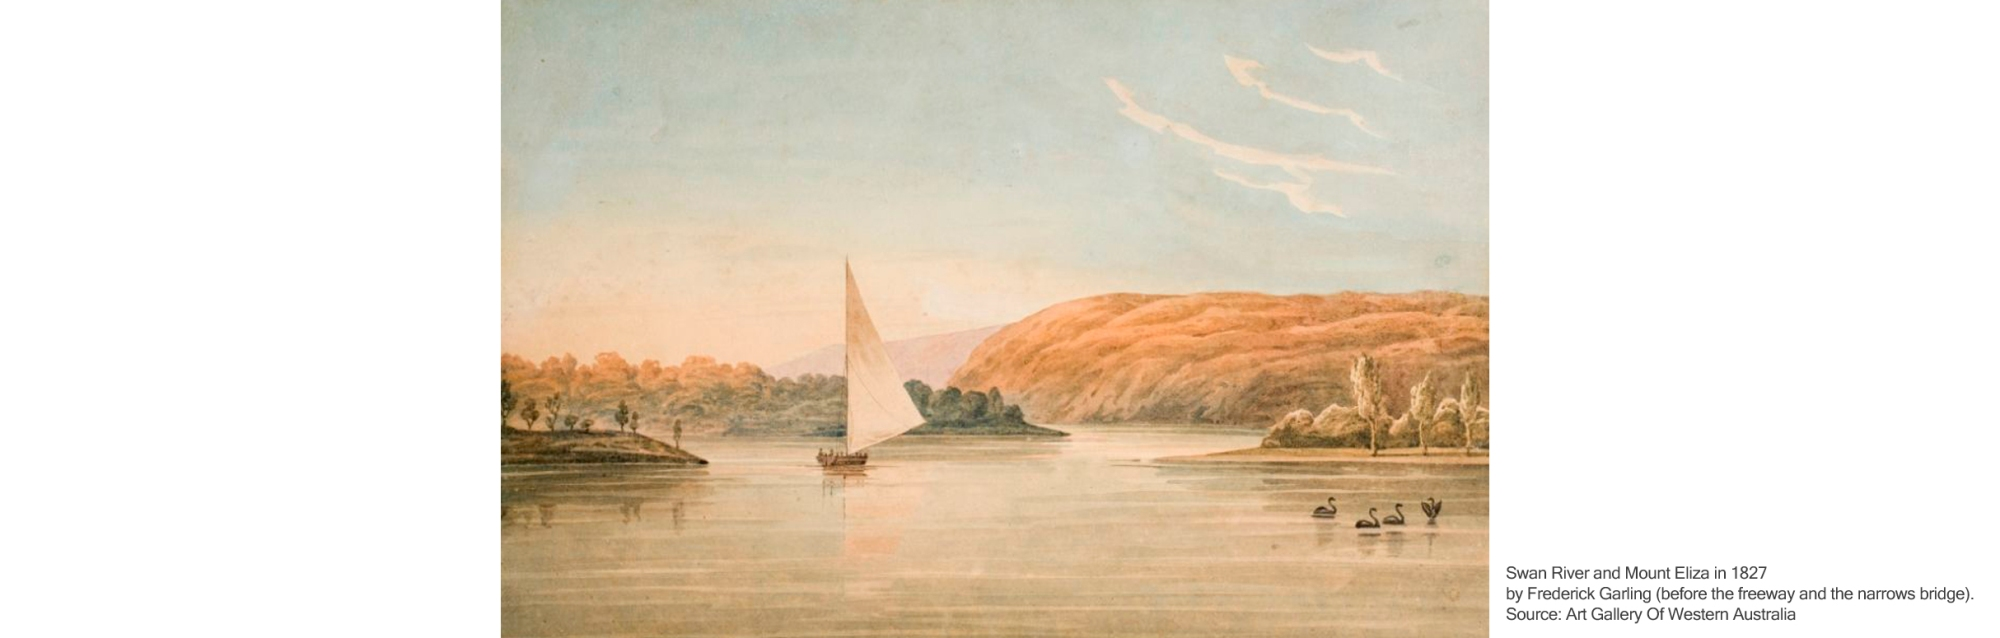 Swan River and Mount Eliza in 1827 by Frederick Garling - before the freeway and the narrows bridge. Source: Art Gallery Of Western Australia.